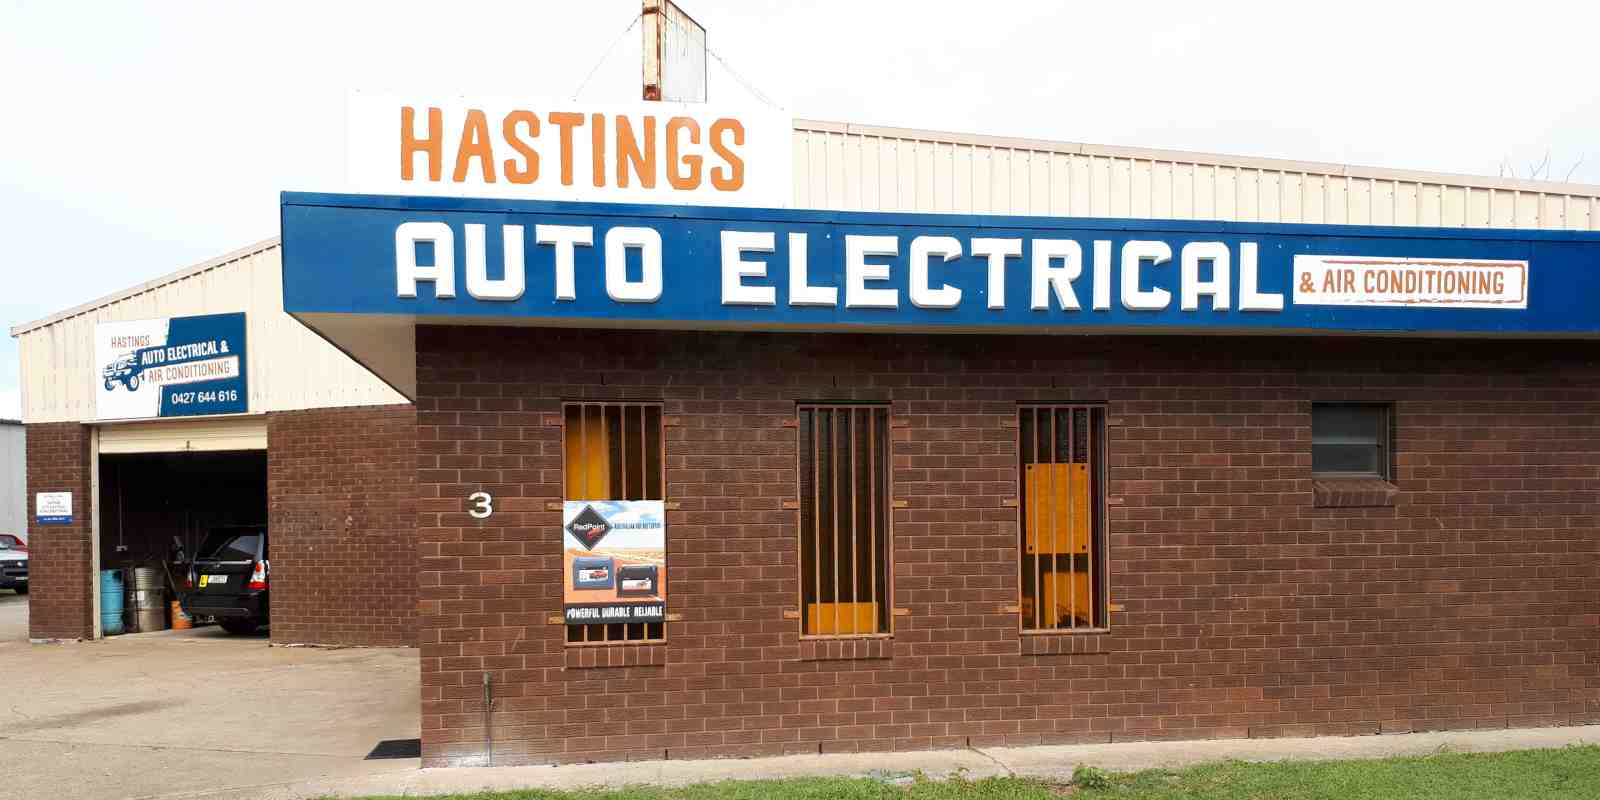 Hastings Auto Electrical